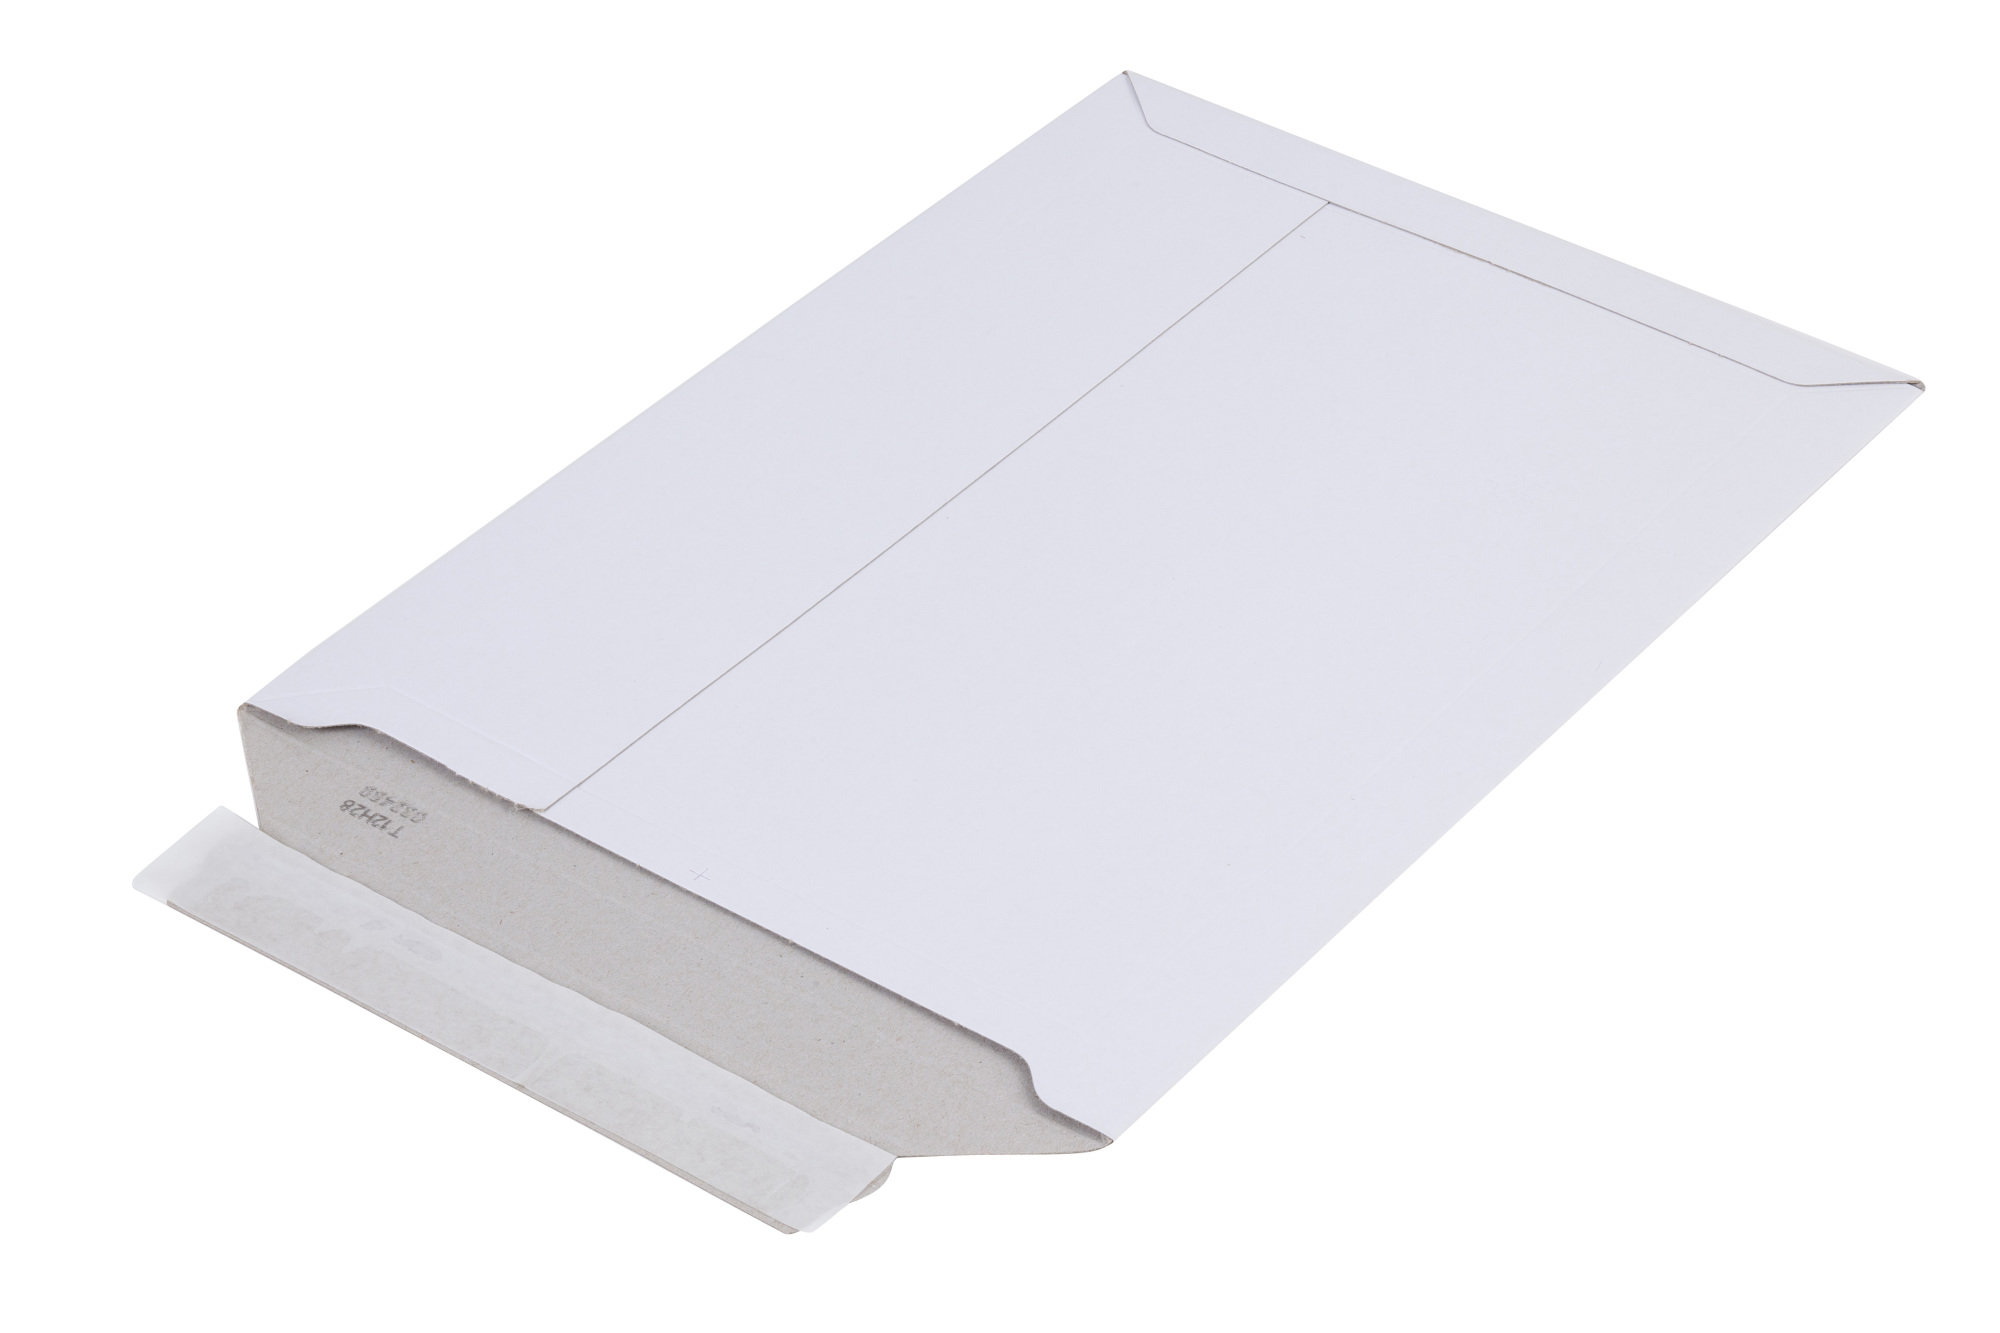 265 x 350mm Toppac White Solid Board Mailing Envelopes